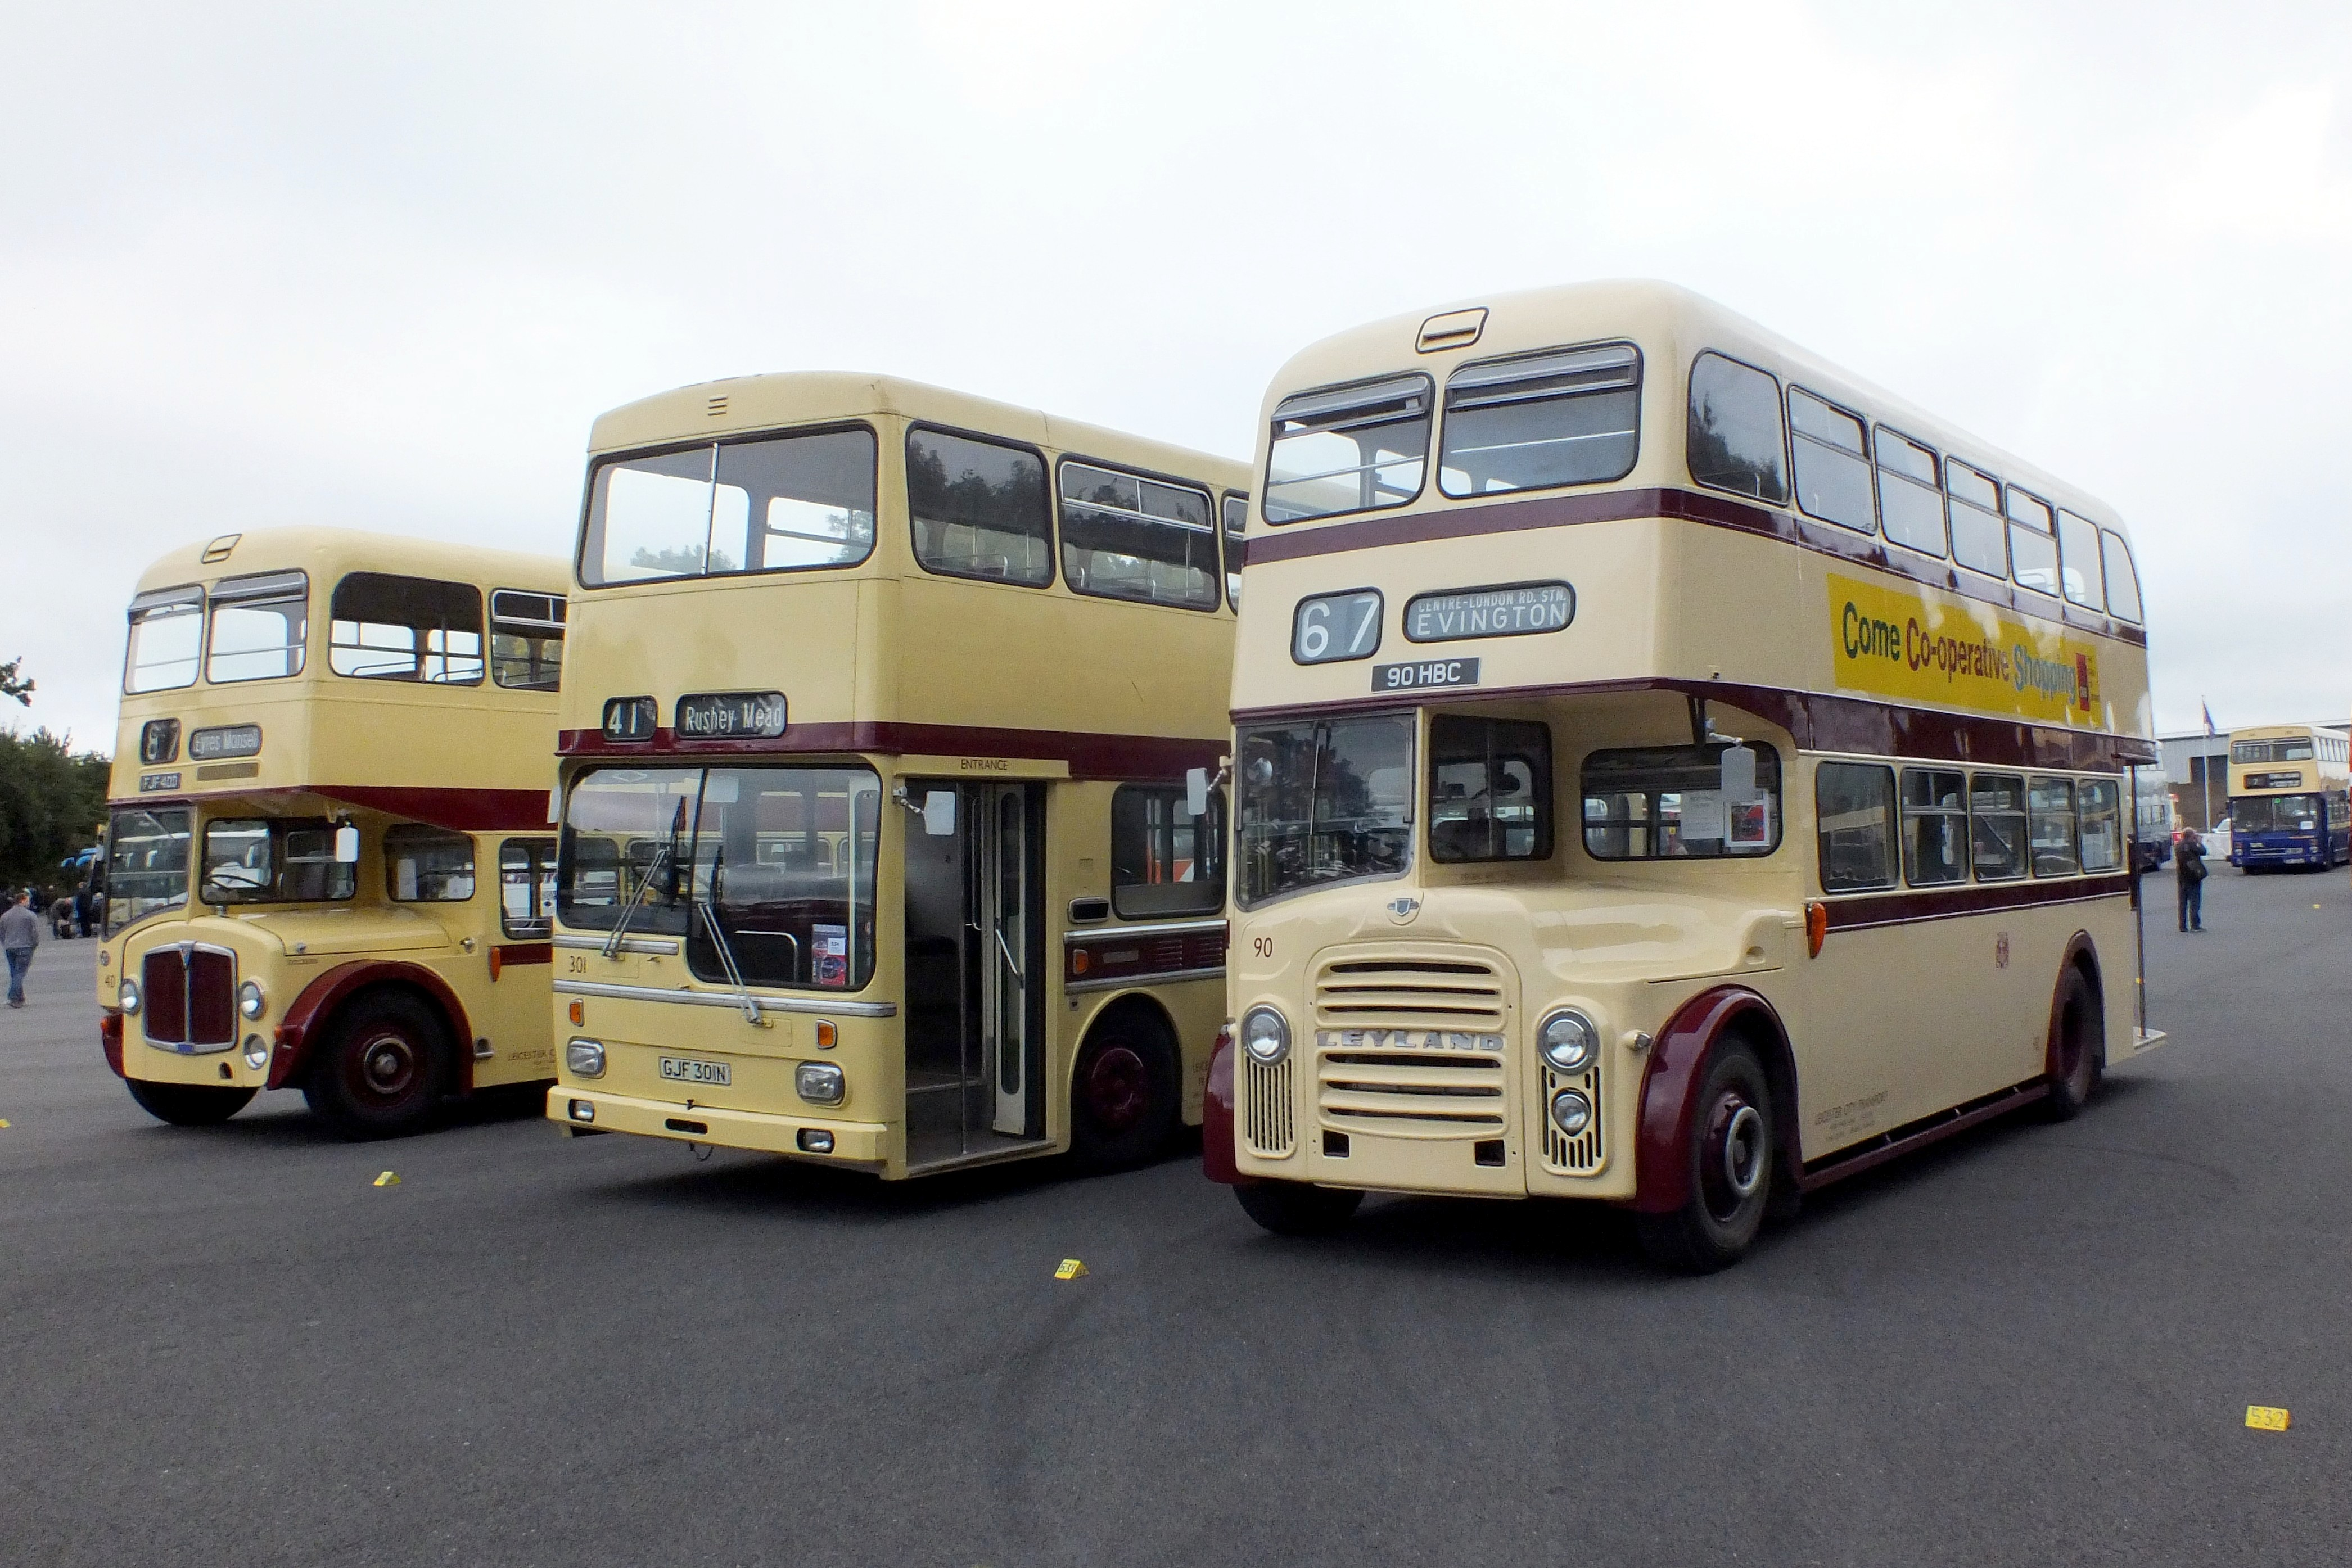 17 September 2017 Showbus, Donington. 359.jpg